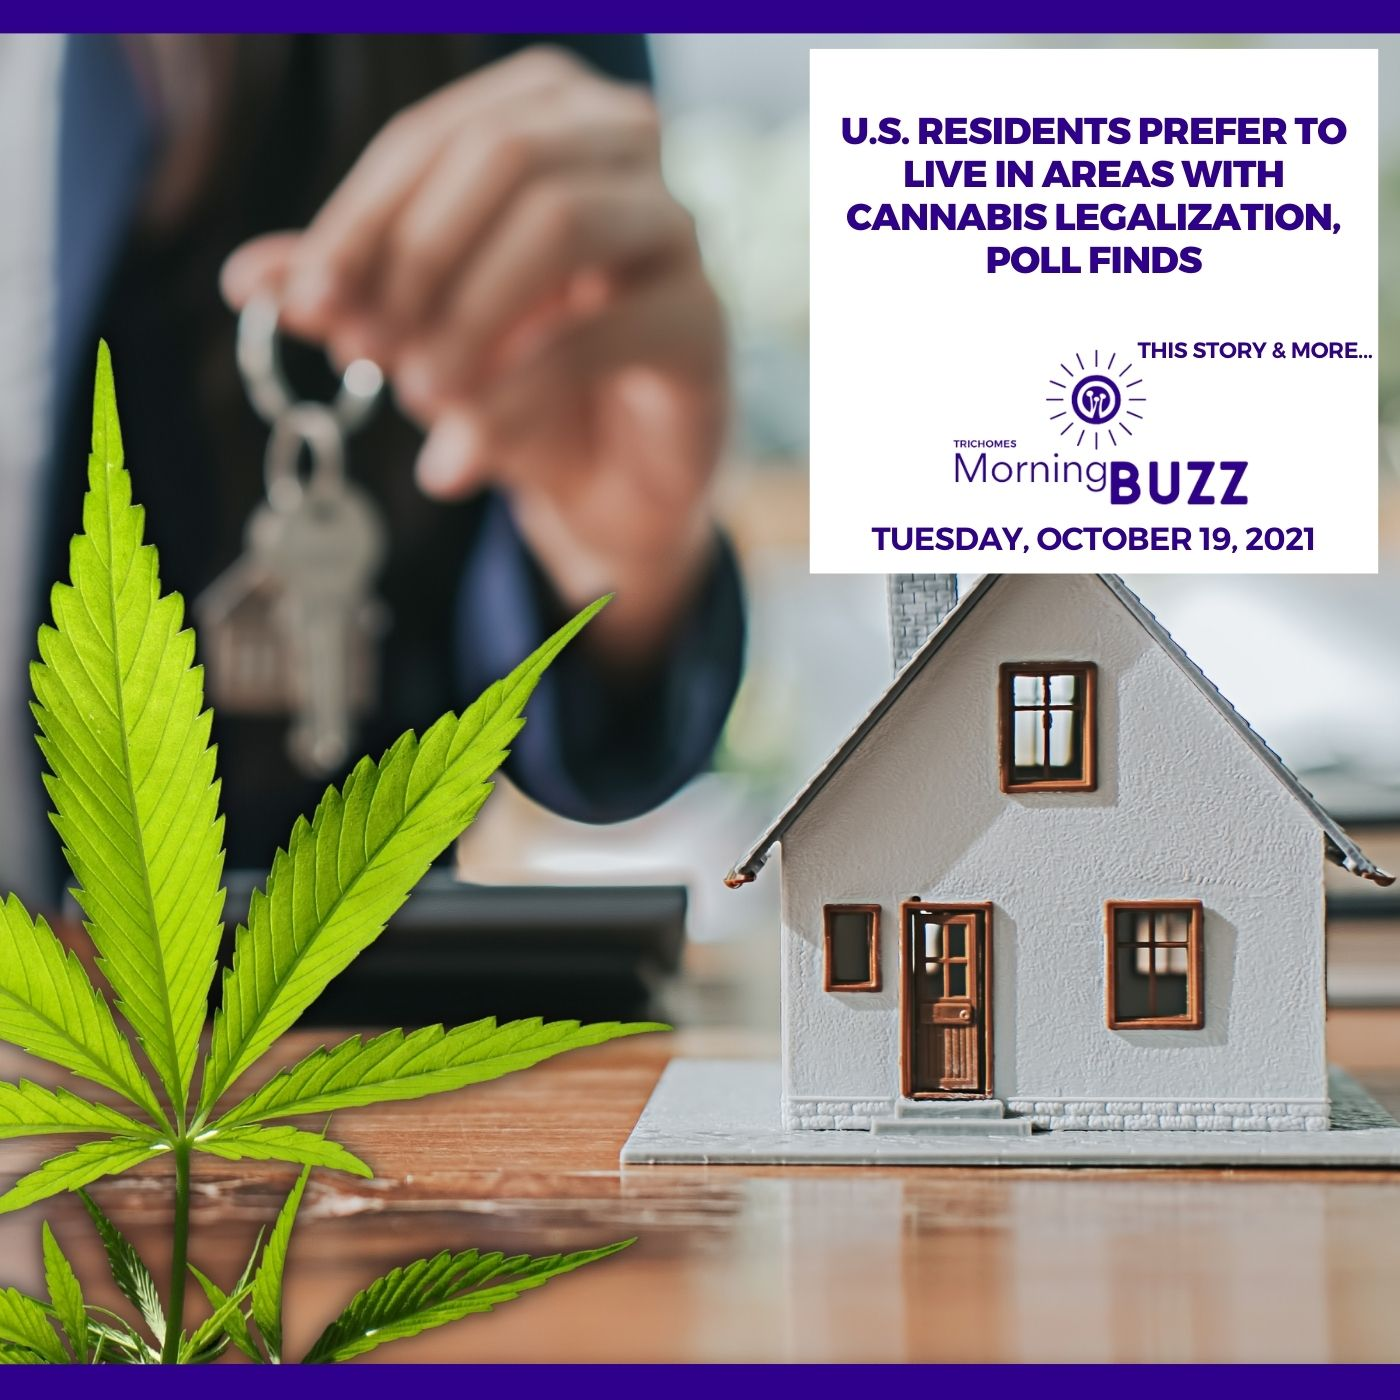 U.S. Residents Prefer To Live In Areas With Cannabis Legalization, Poll Finds show art